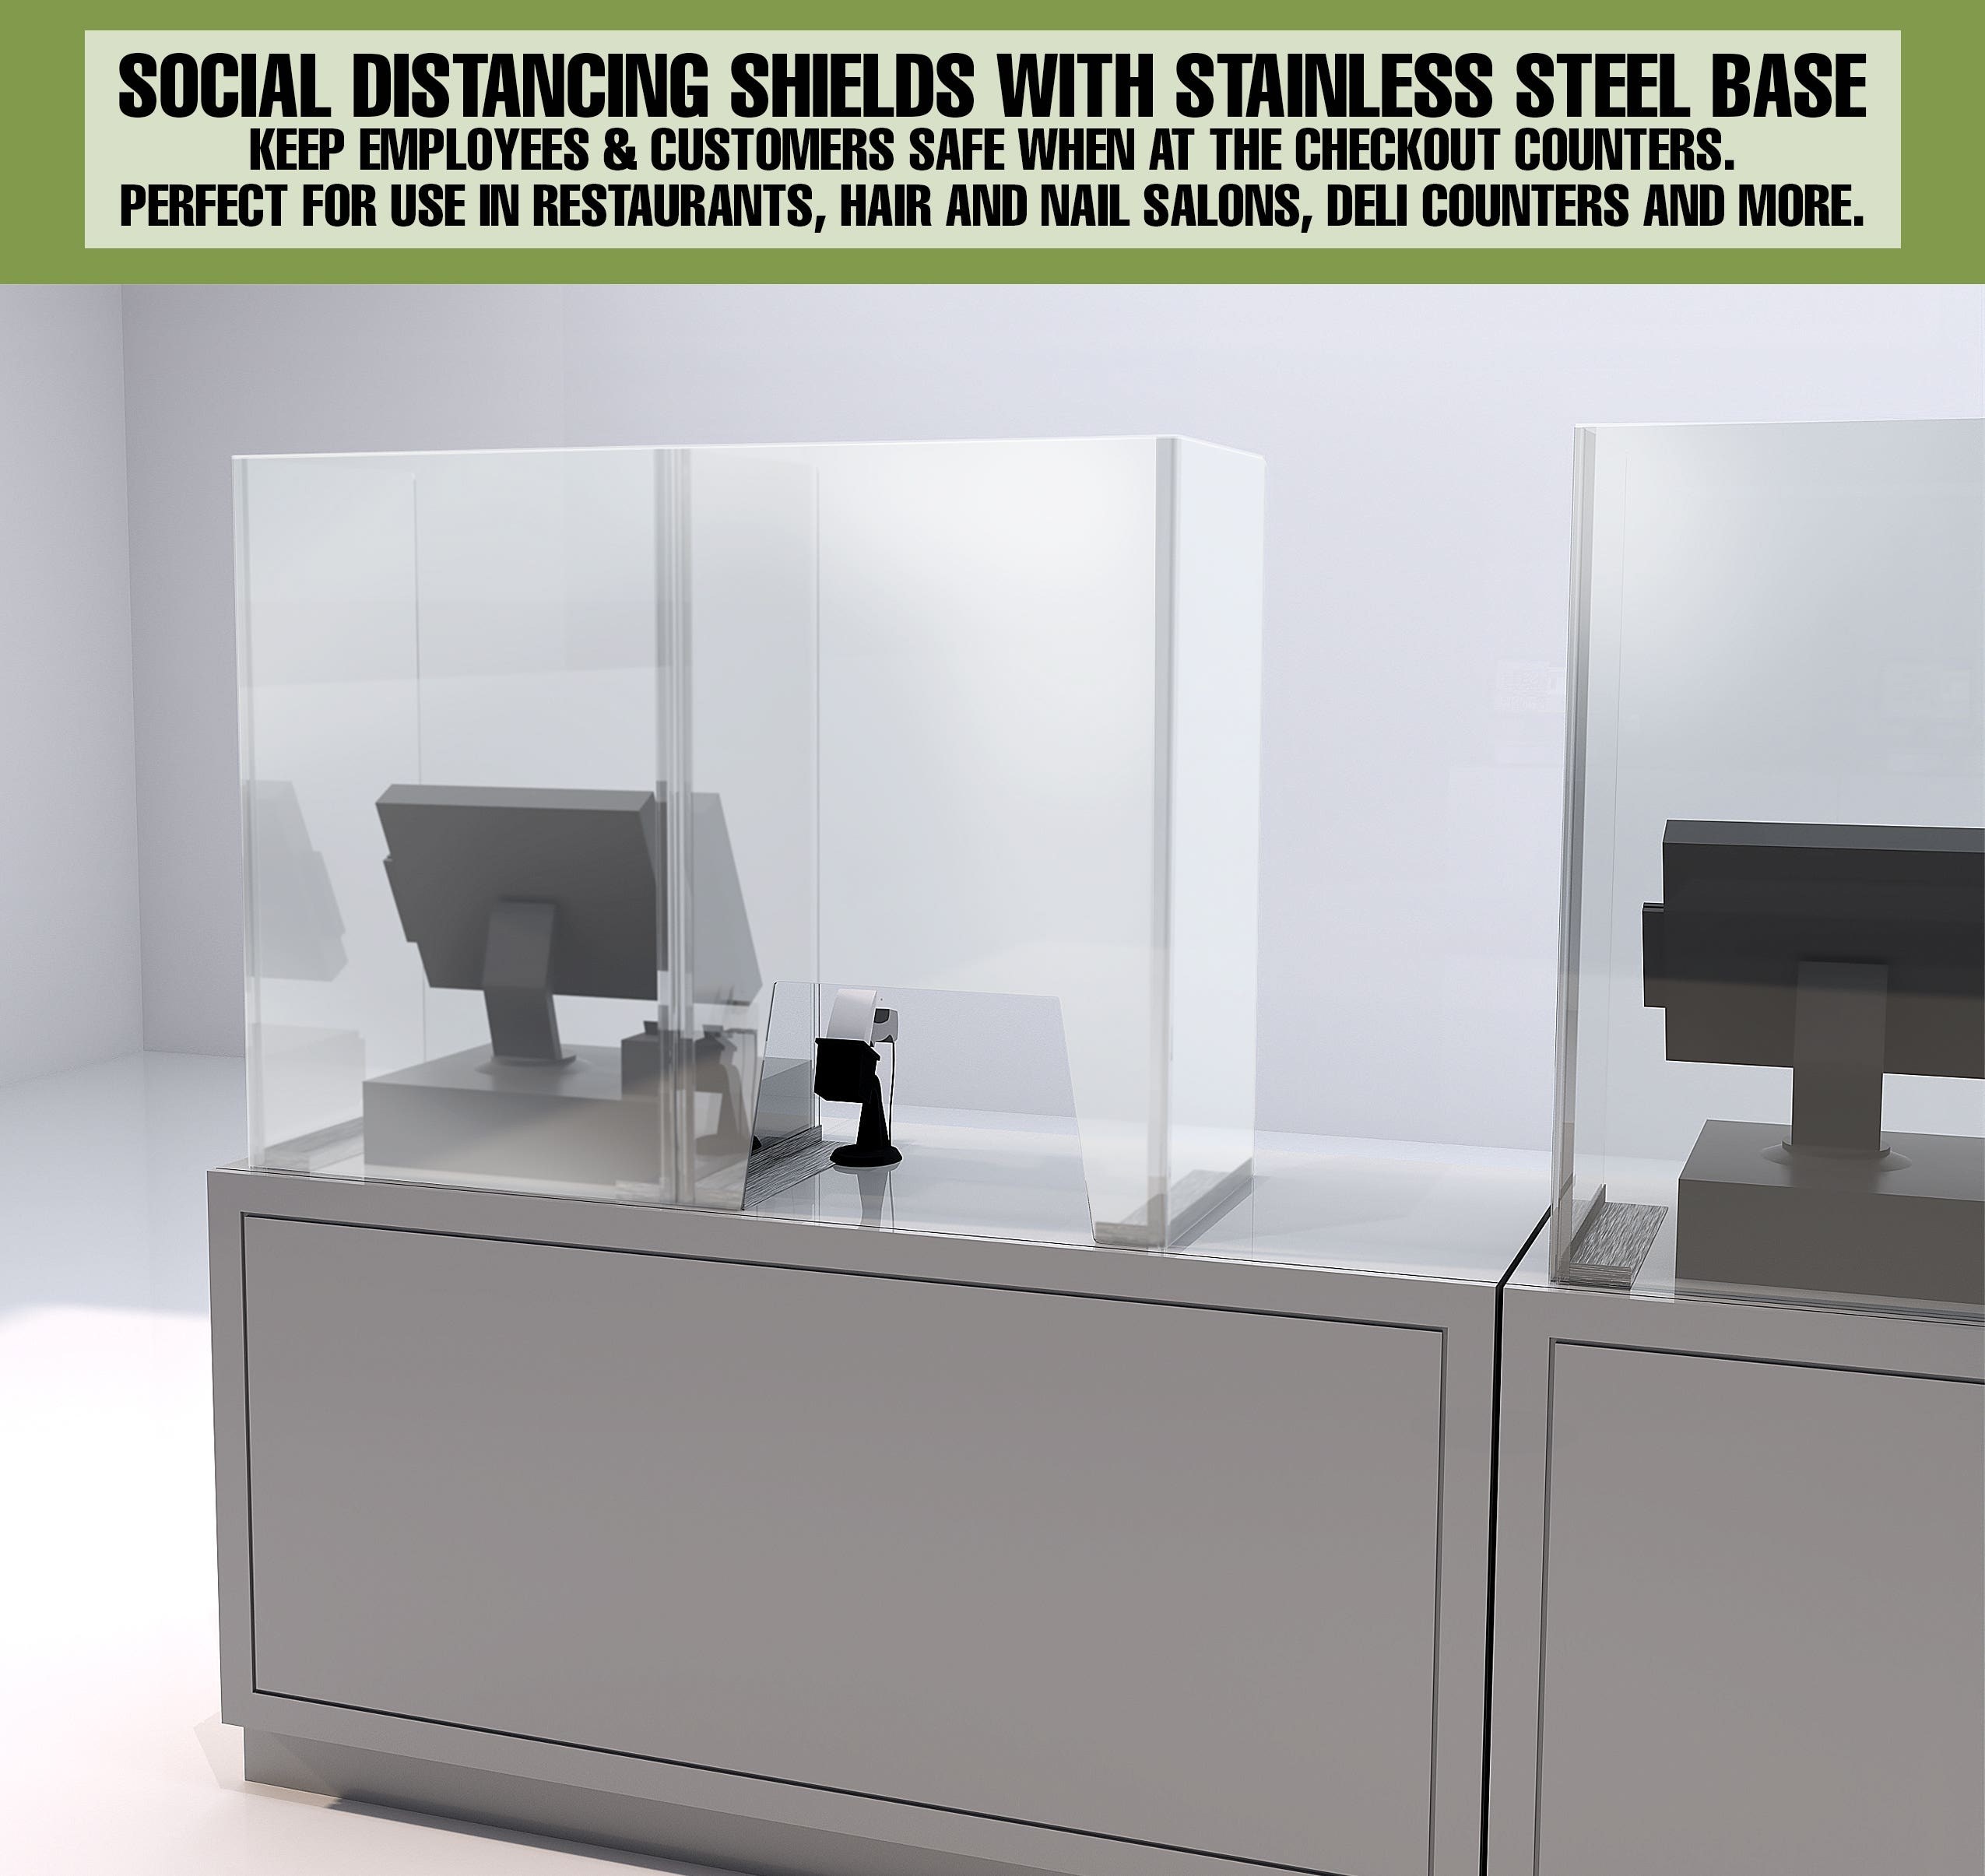 Social Distancing Shields With Stainless Steel Base Keeps employees and customer safe when at the checkout counters. Perfect for use in restaurants, hair and nail salons, deli counters and more.